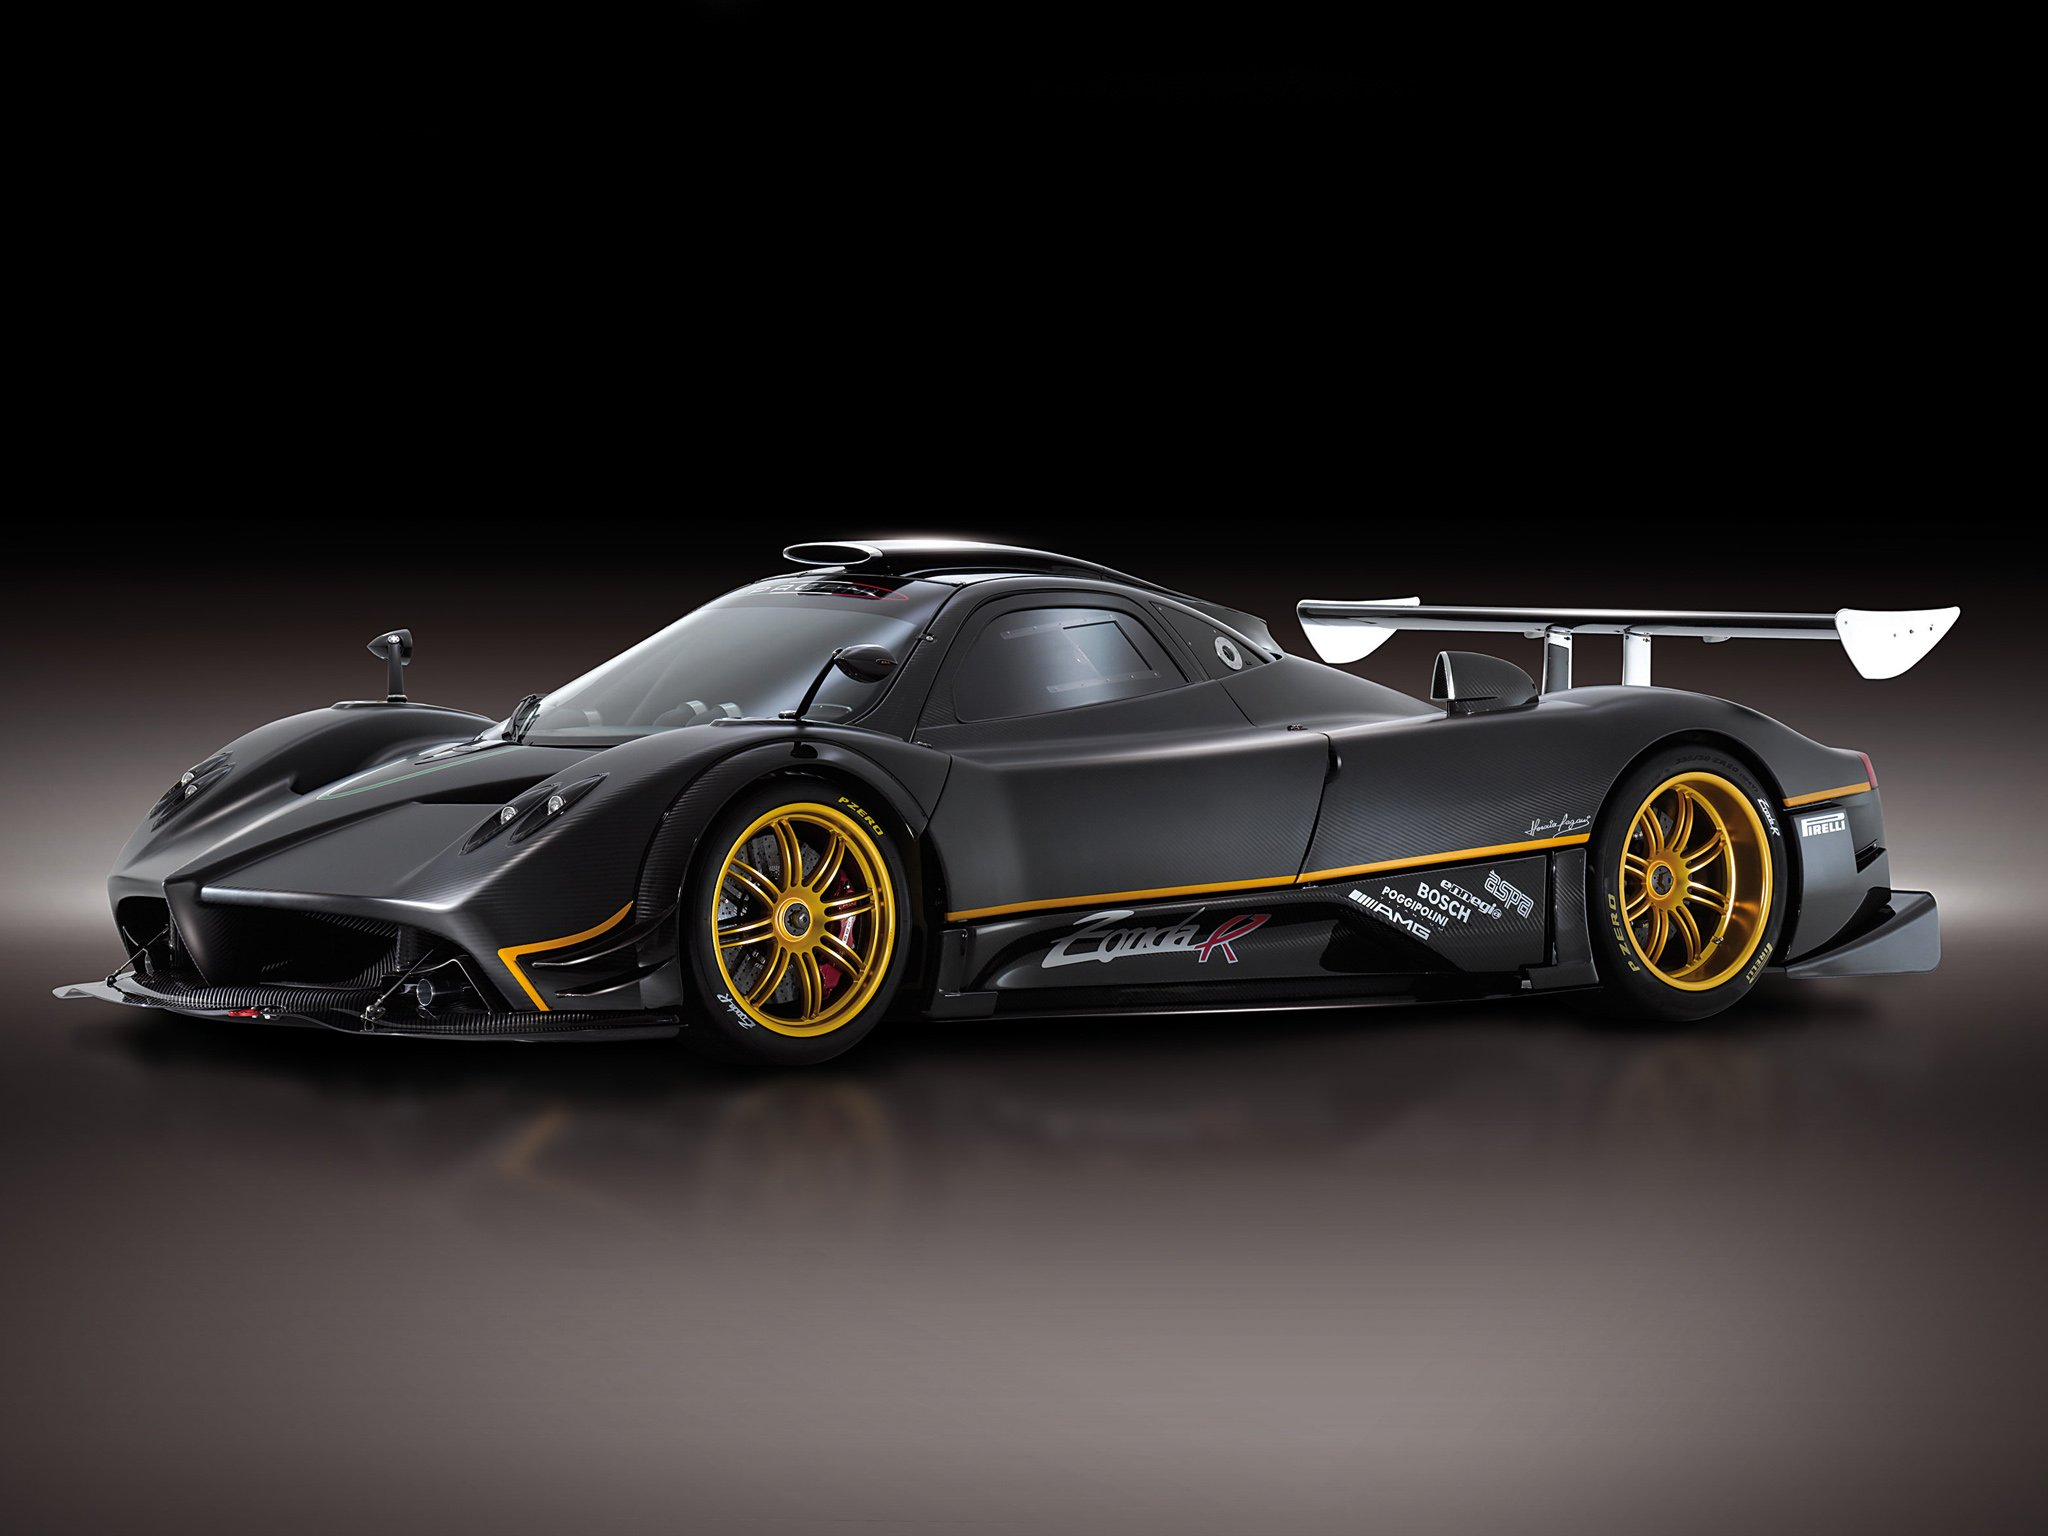 26 Pagani Zonda R HD Wallpapers Background Images 2048x1536